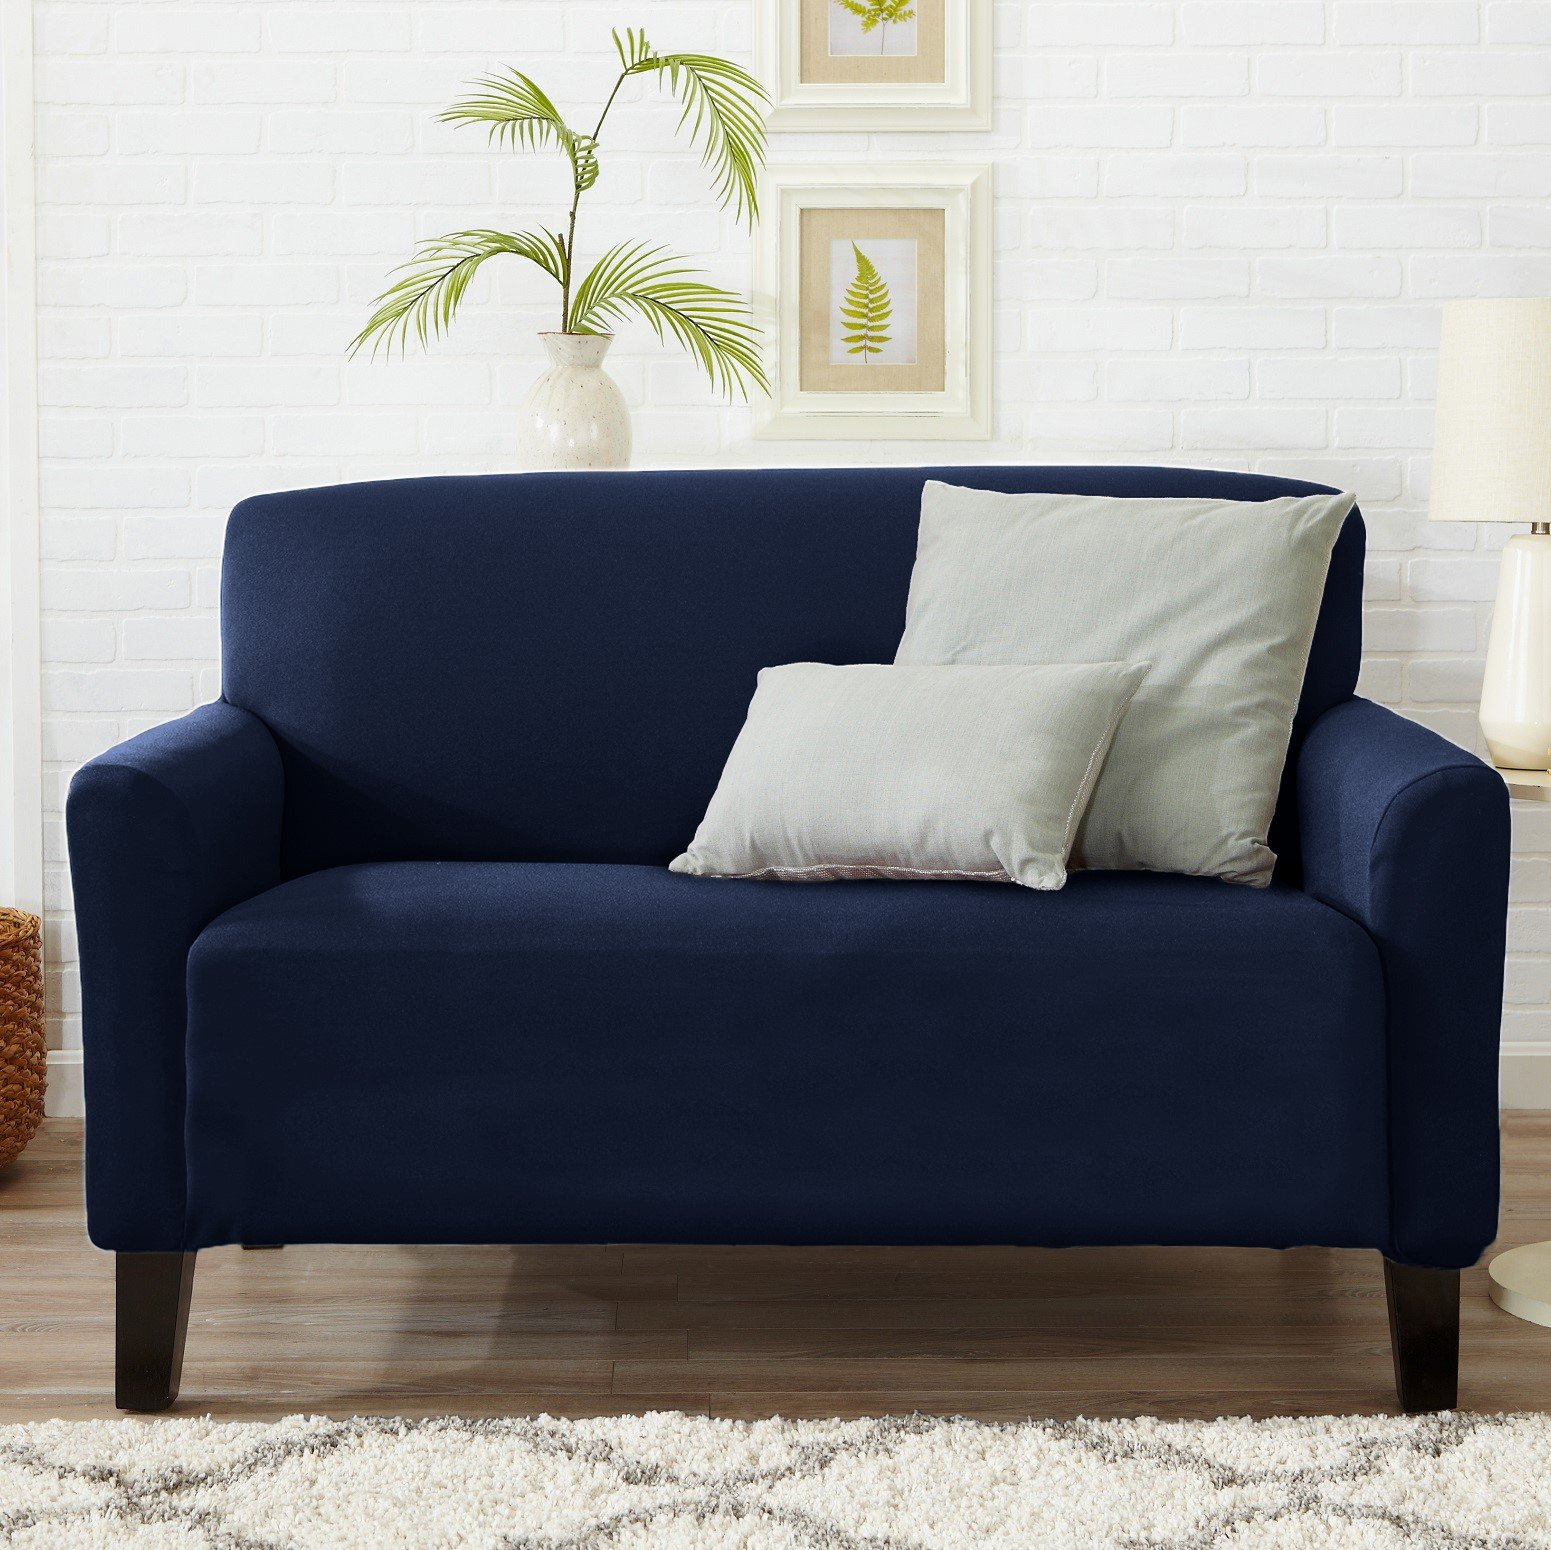 Home Fashion Designs Form Fit, Slip Resistant, Stylish Furniture Cover/Protector Featuring Lightweight Stretch Twill Fabric. Brenna Collection Strapless Slipcover. By (Loveseat, Navy - Solid)